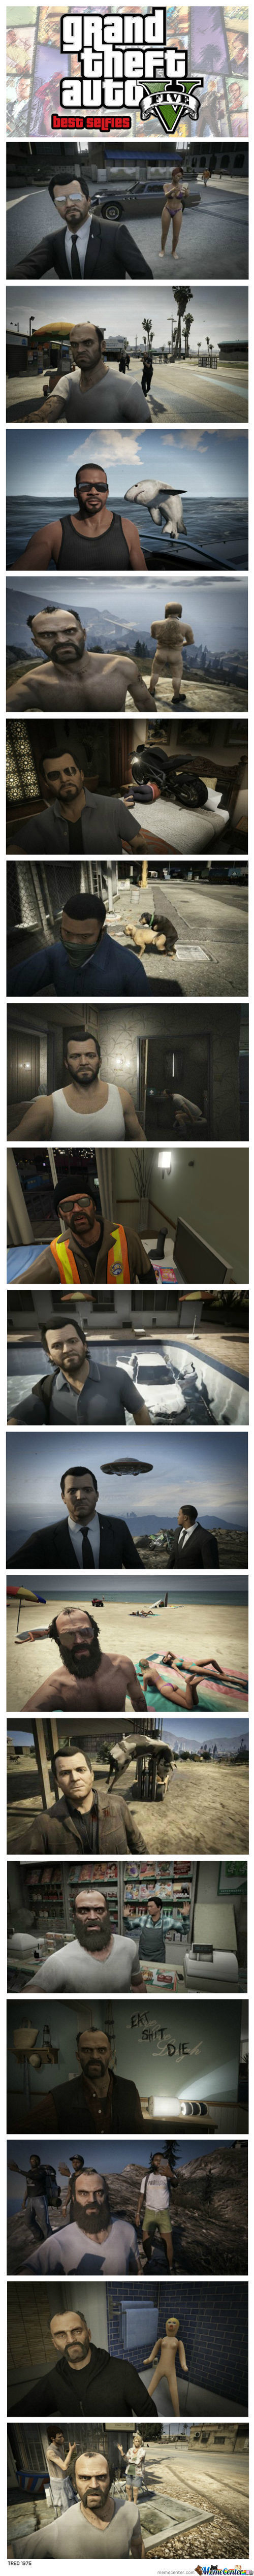 Best Gta V Selfies So Far